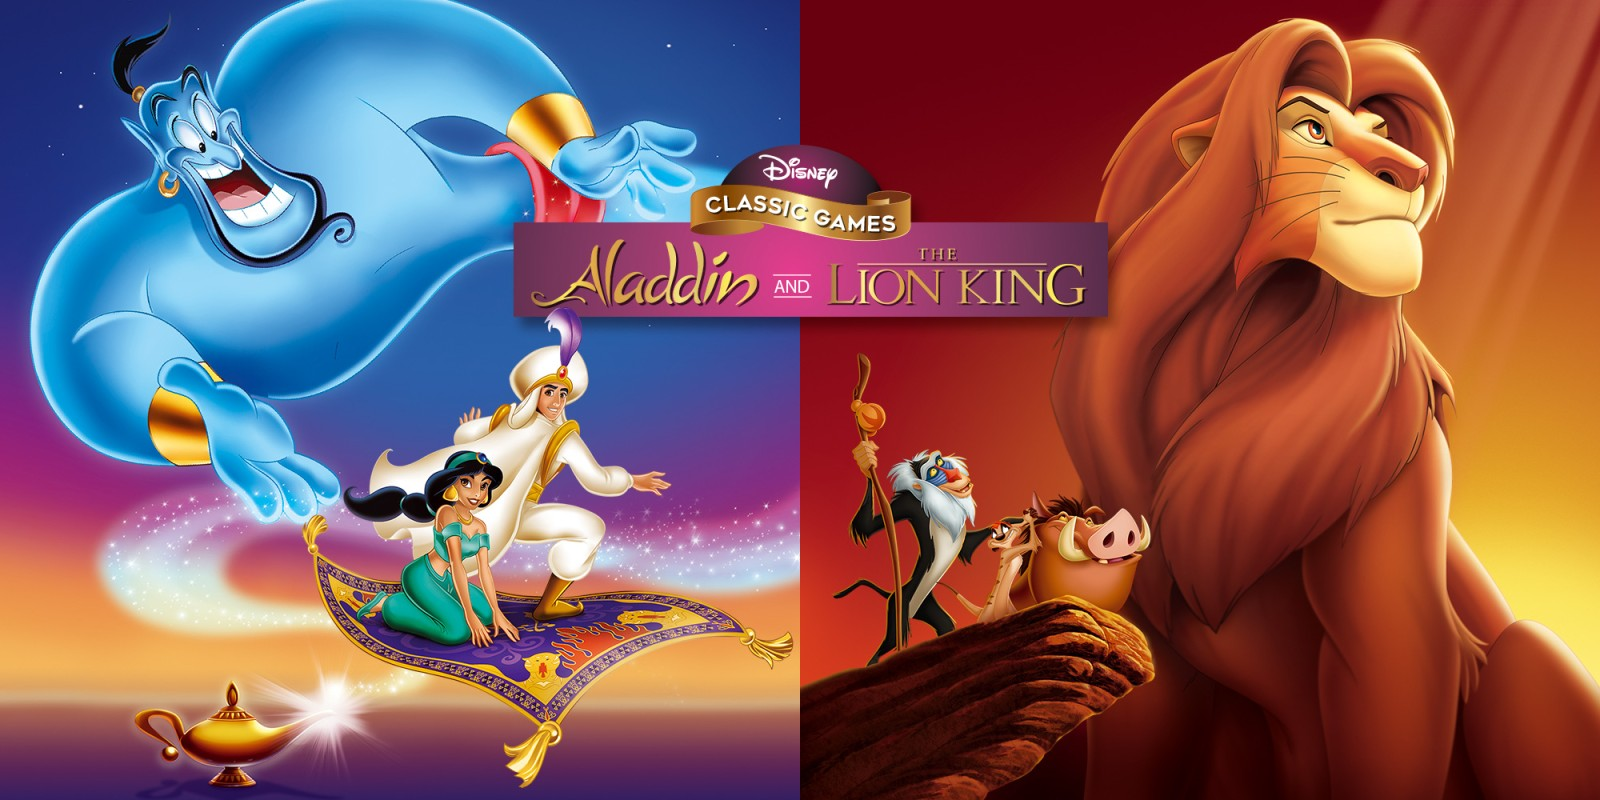 Last Game You Finished And Your Four-ghts - Page 6 H2x1_NSwitch_DisneyClassicGamesAladdinAndTheLionKing_image1600w